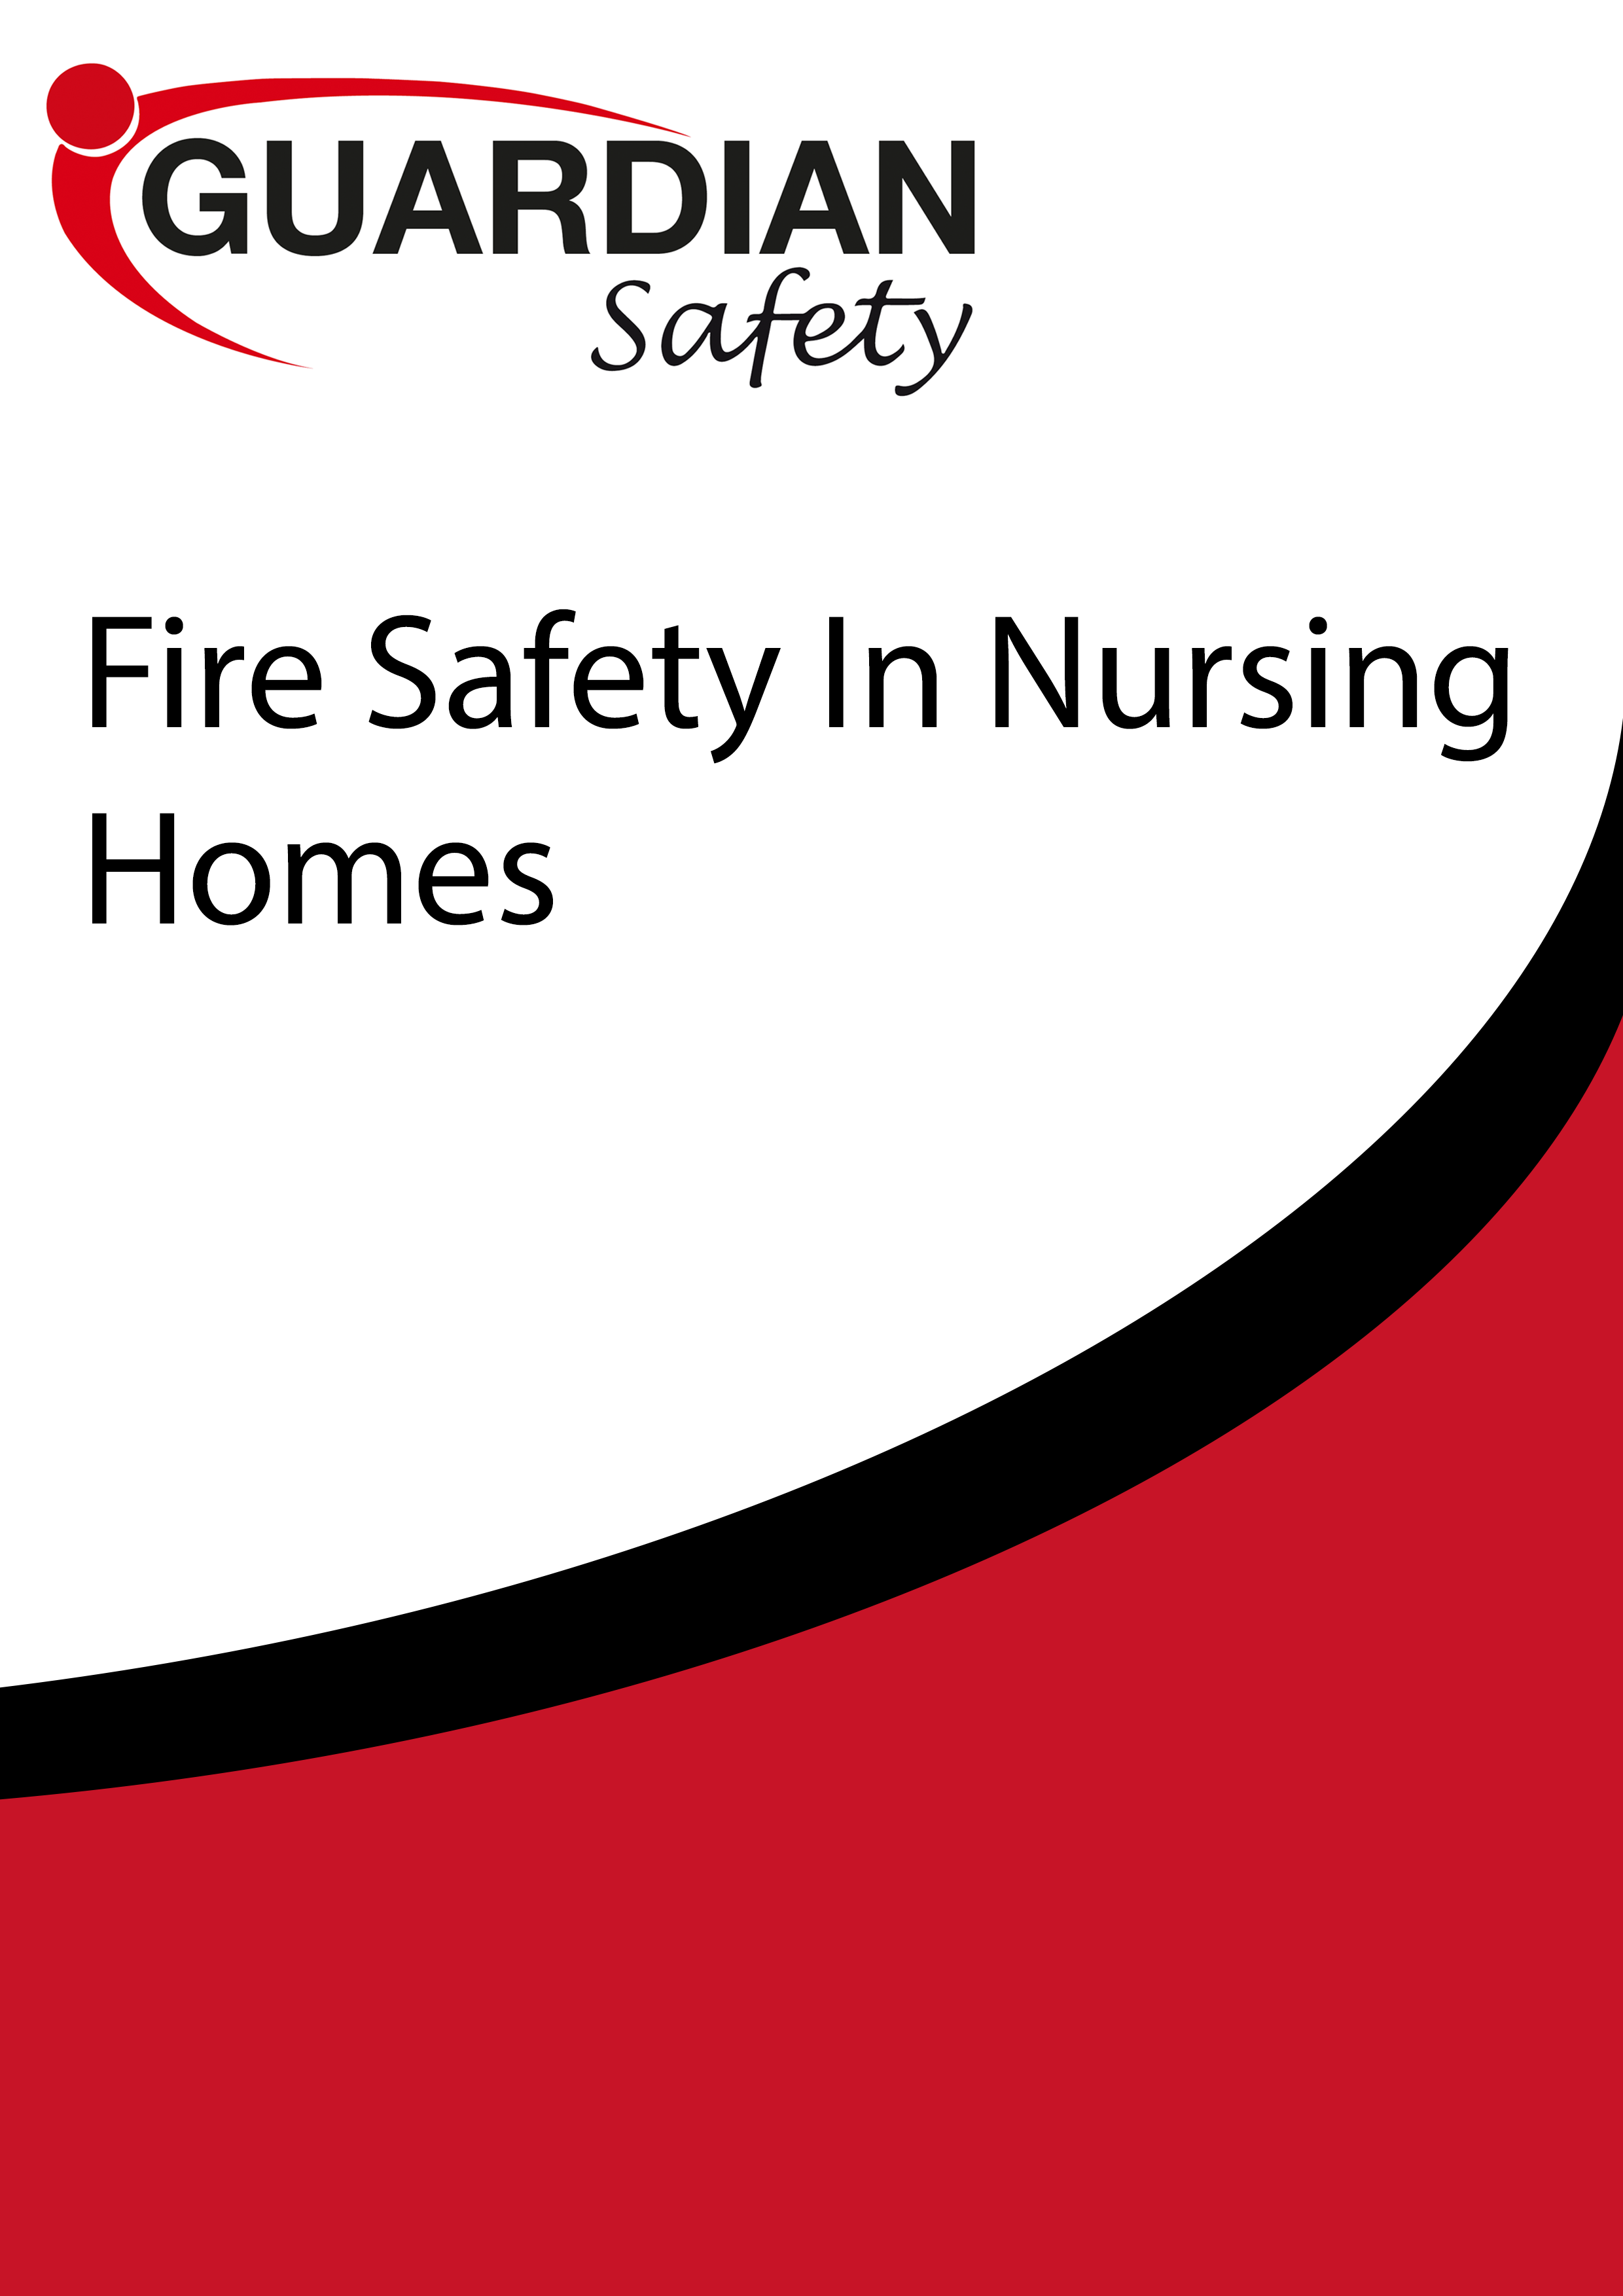 Fire safety nurseing home